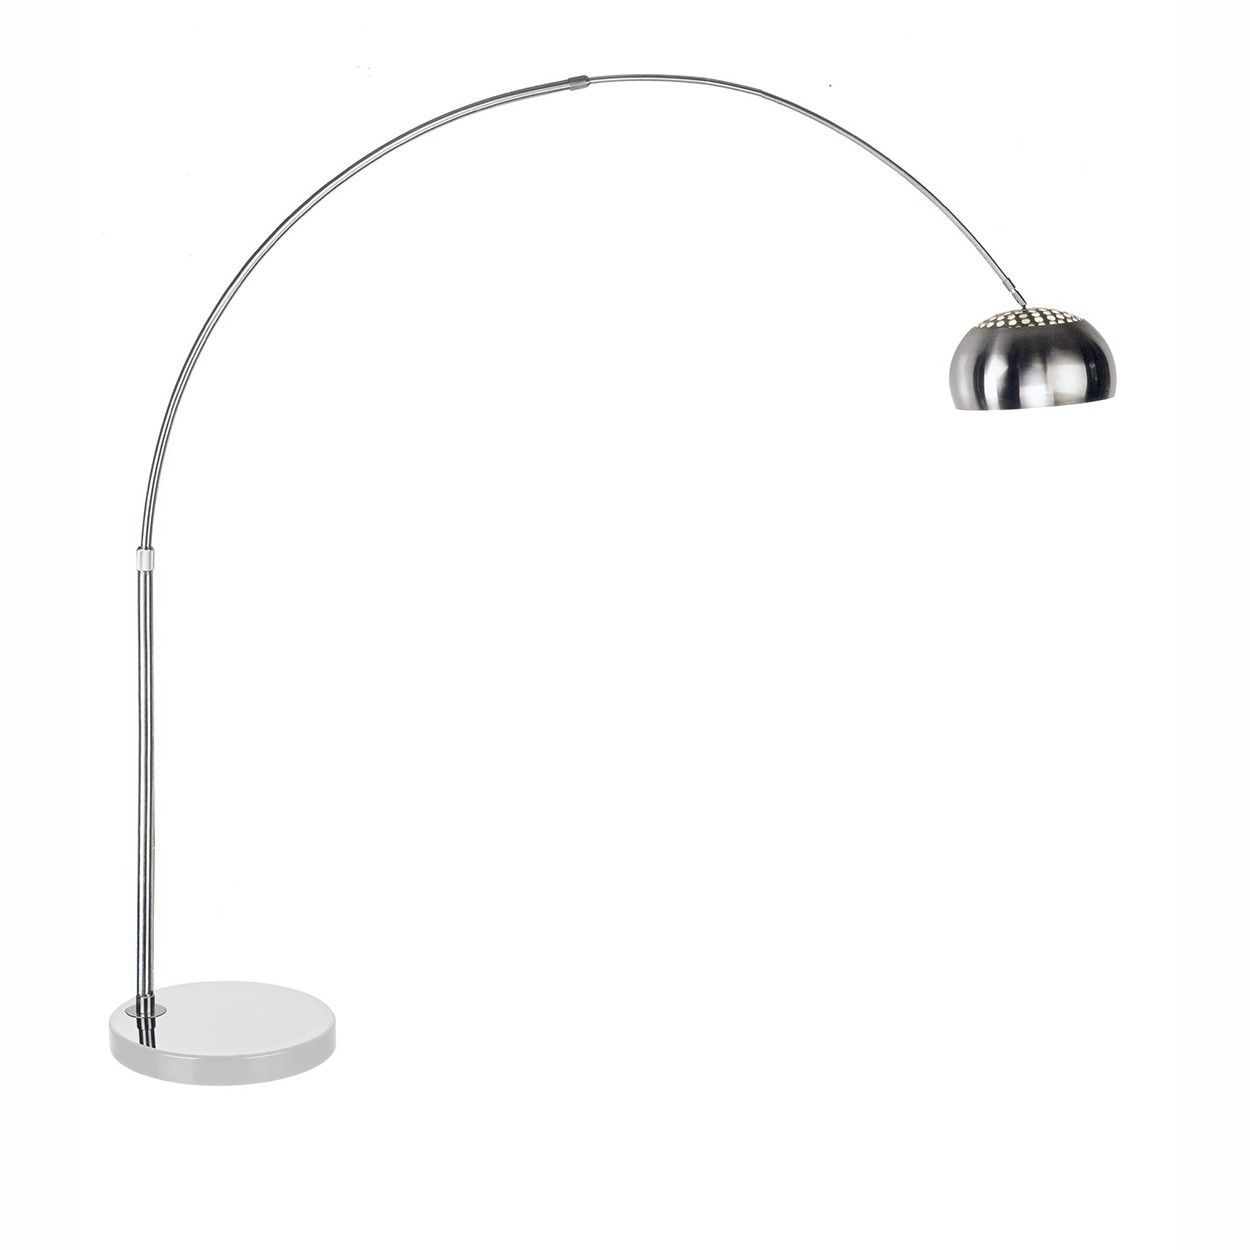 Mid Century Modern Reproduction Arco Floor Lamp Round White Marble Base Inspired By Achille Castiglioni